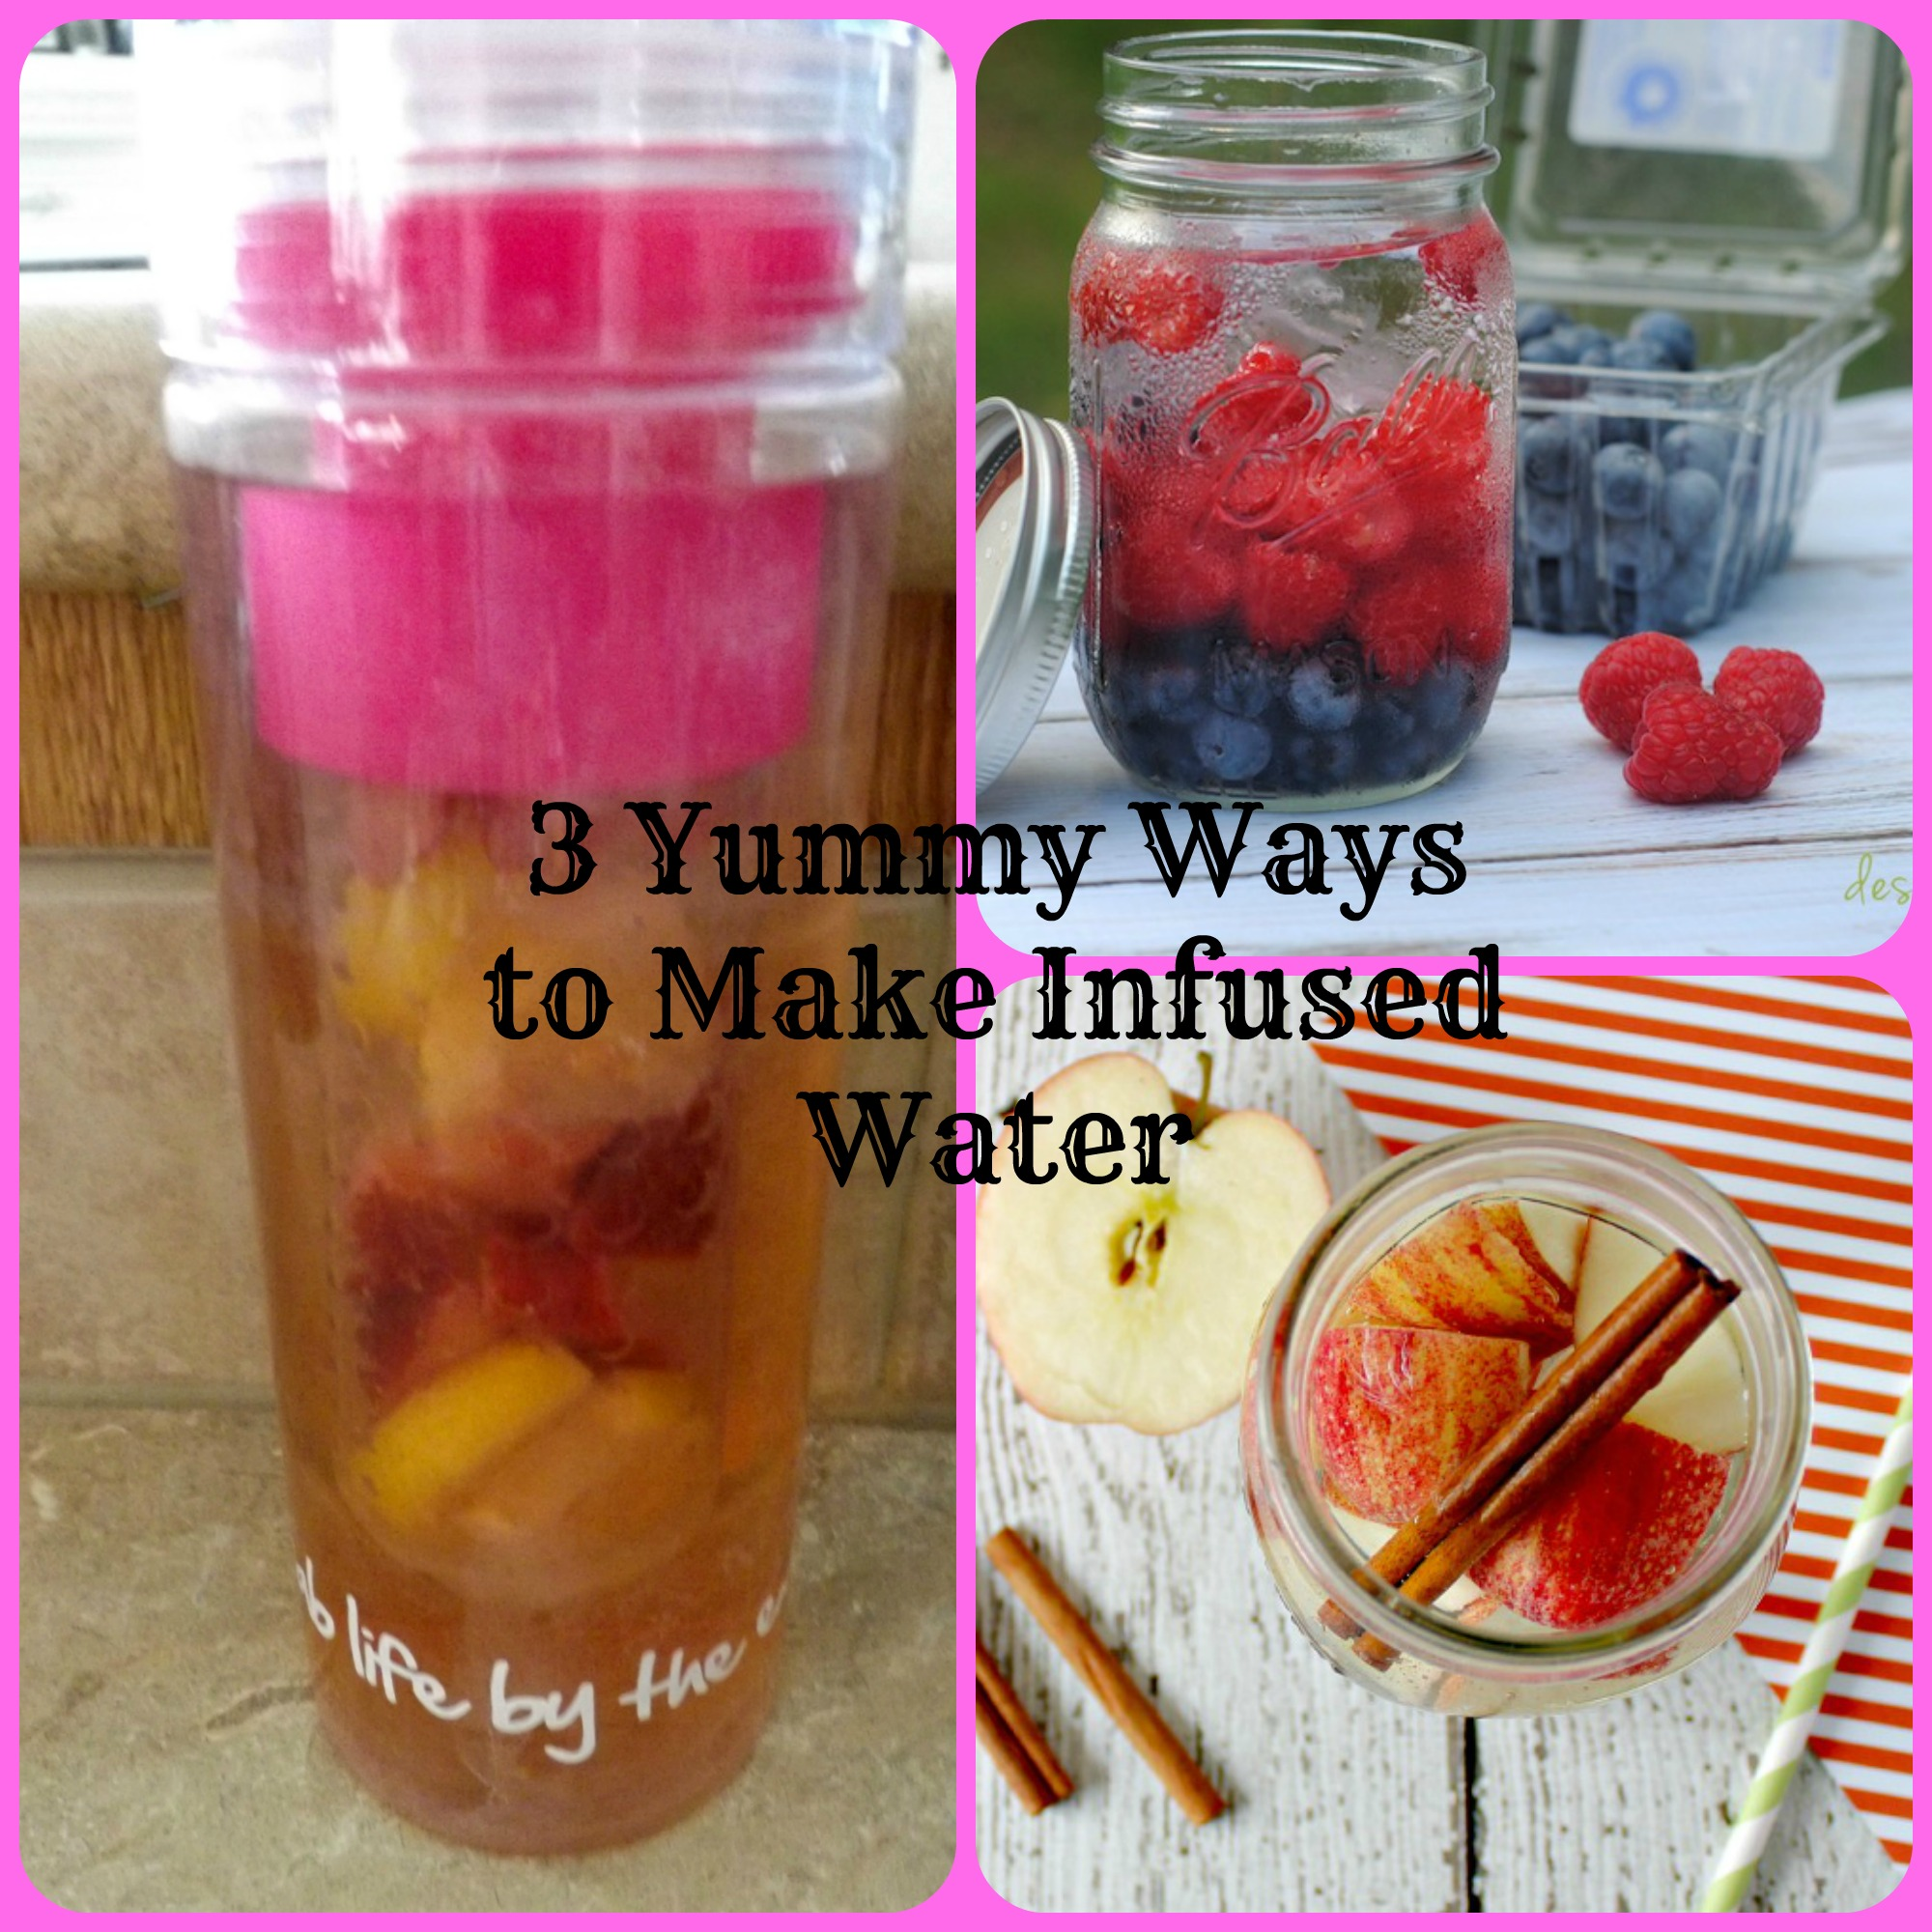 3 Yummy Ways to Make Infused Water